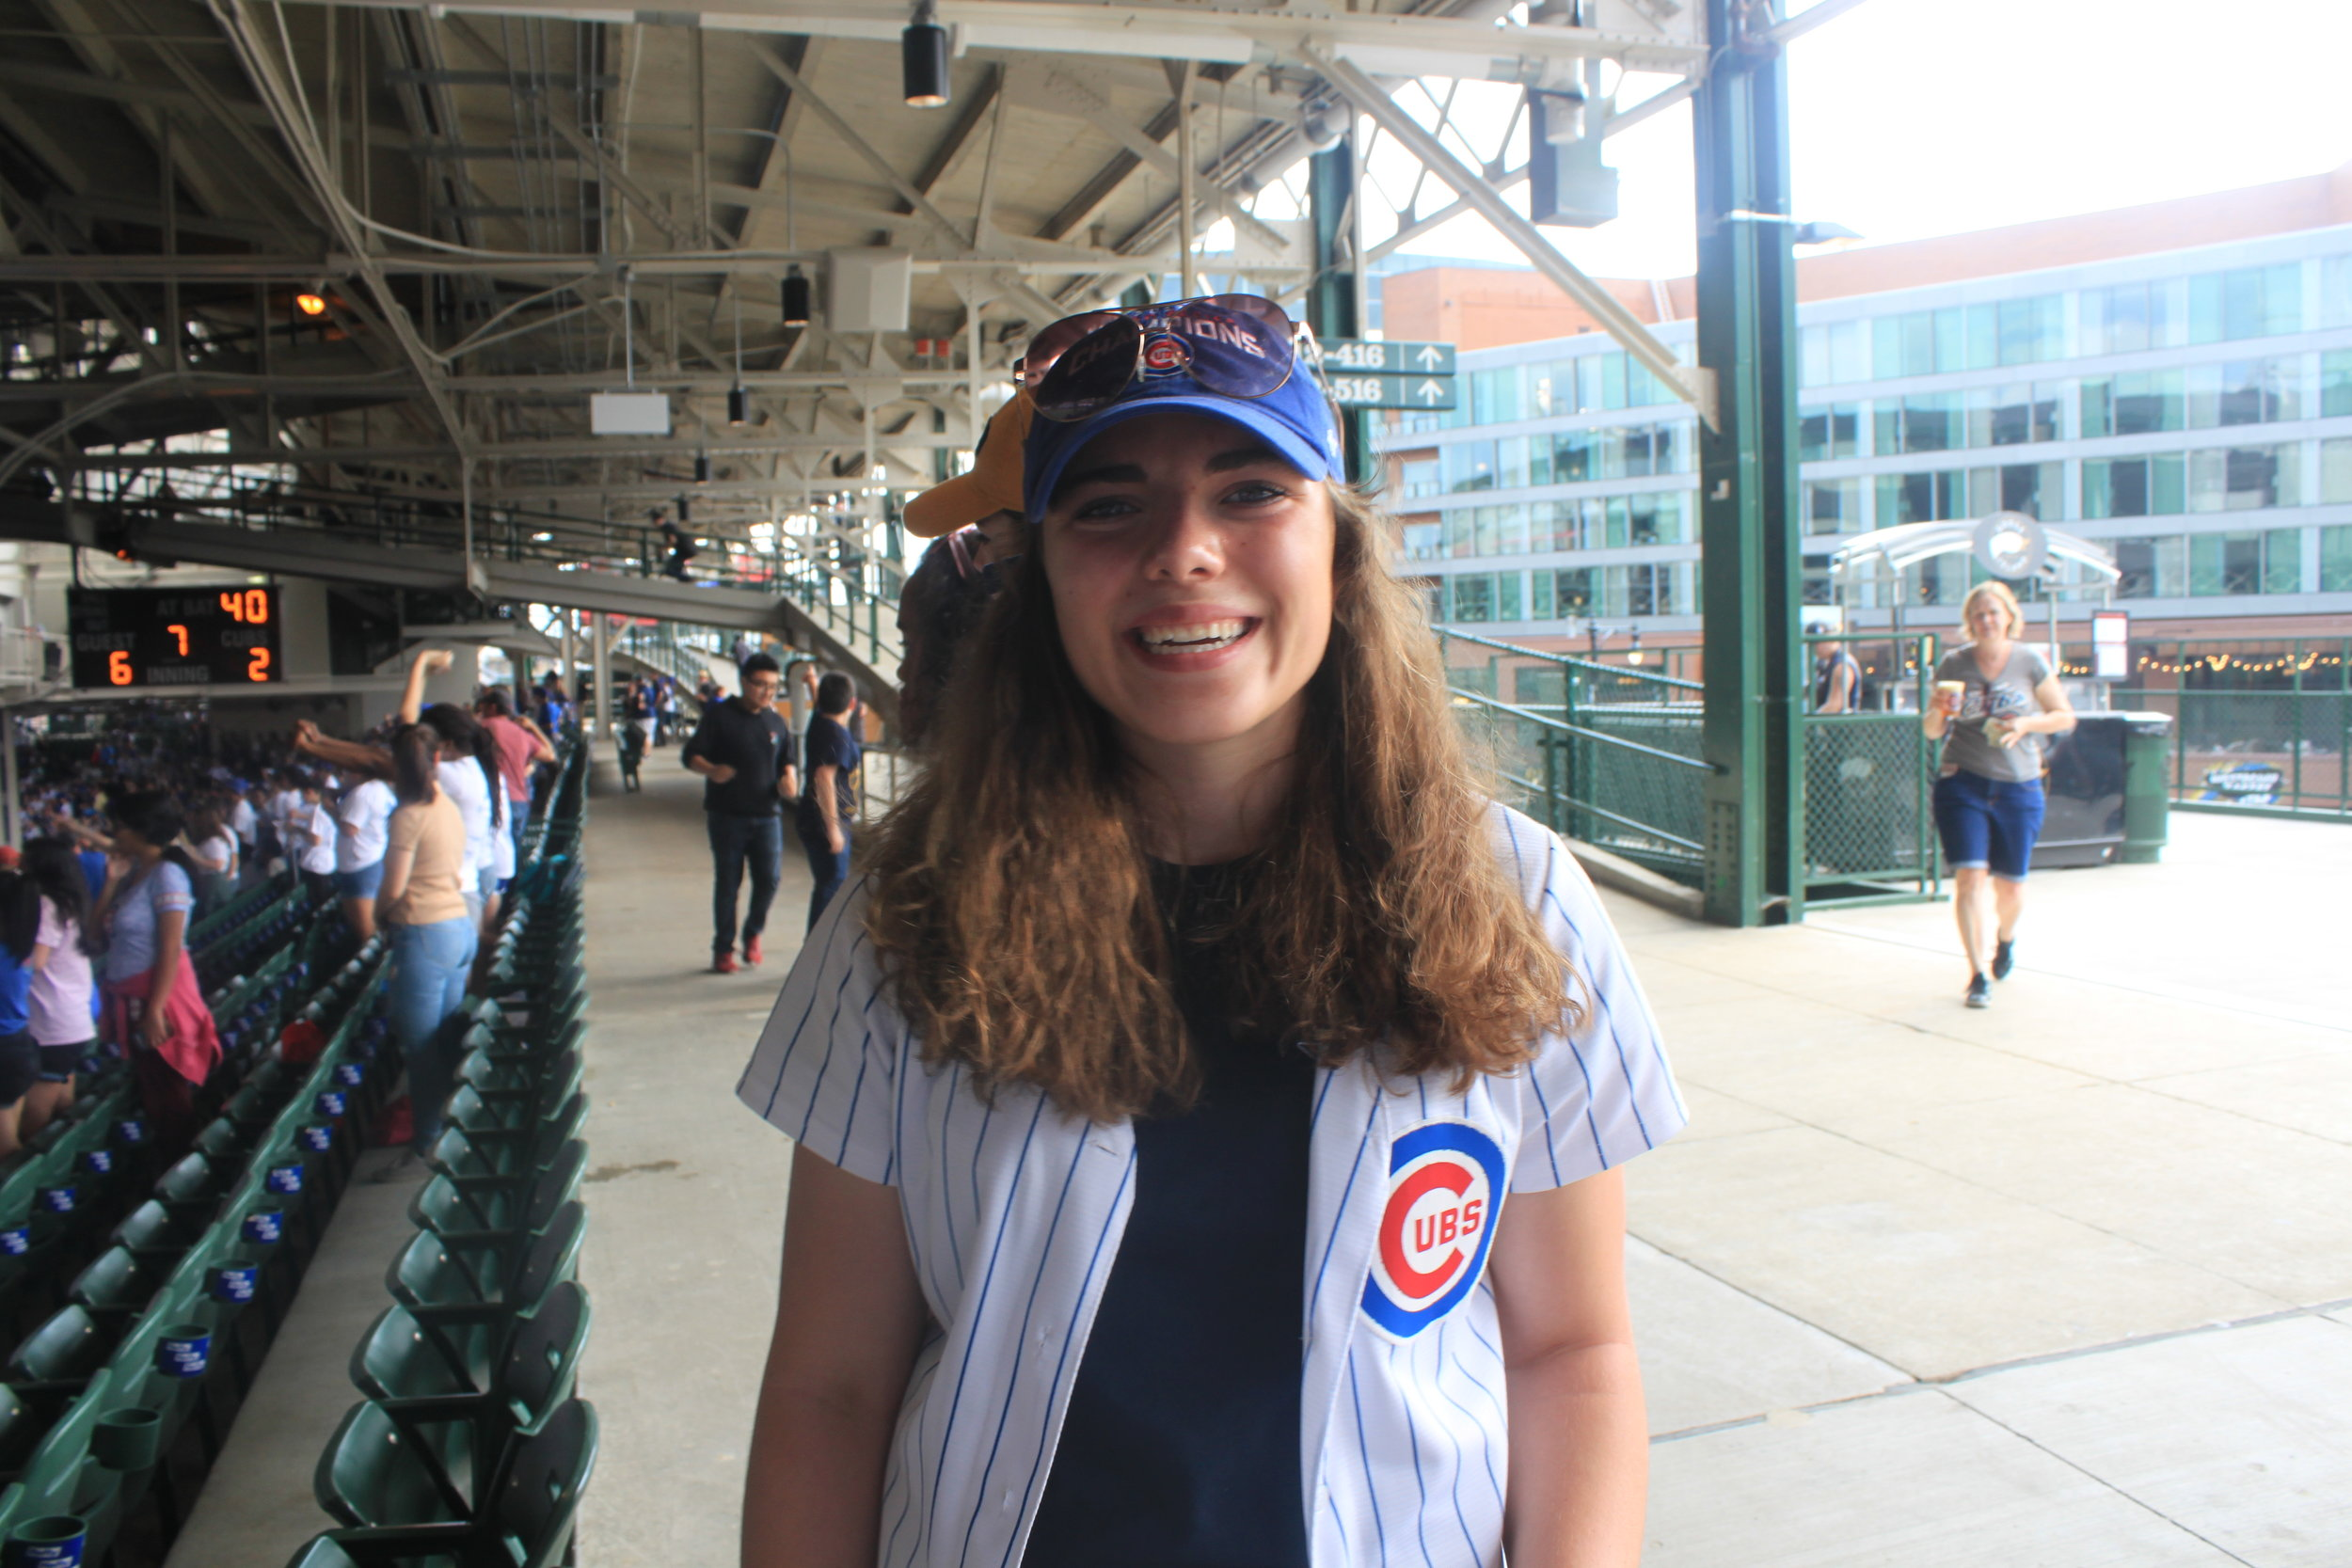 A common feeling at Wrigley, Madeleine Schoeff never wants to leave.